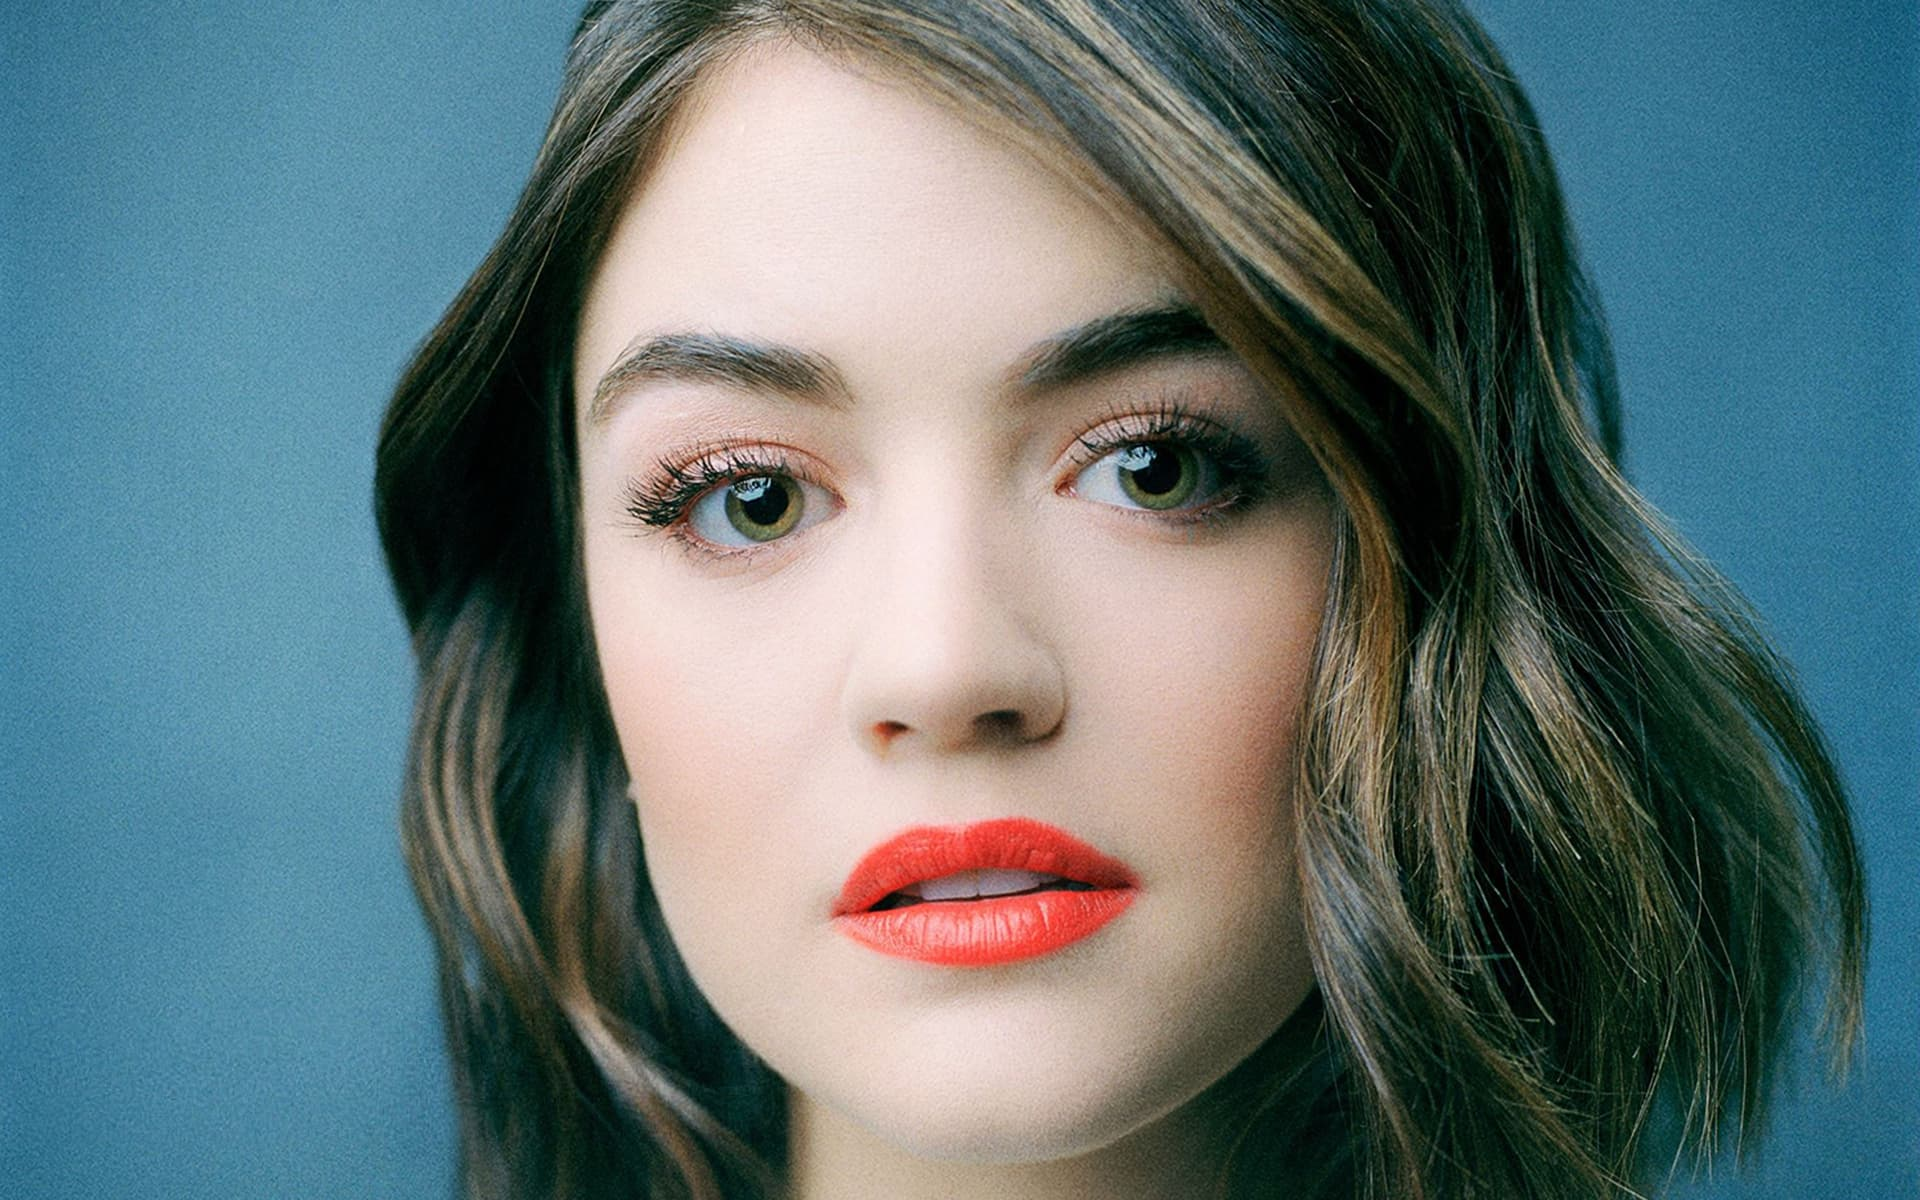 Sport Cars Wallpapers With Girls 15 Lucy Hale Wallpapers High Quality Resolution